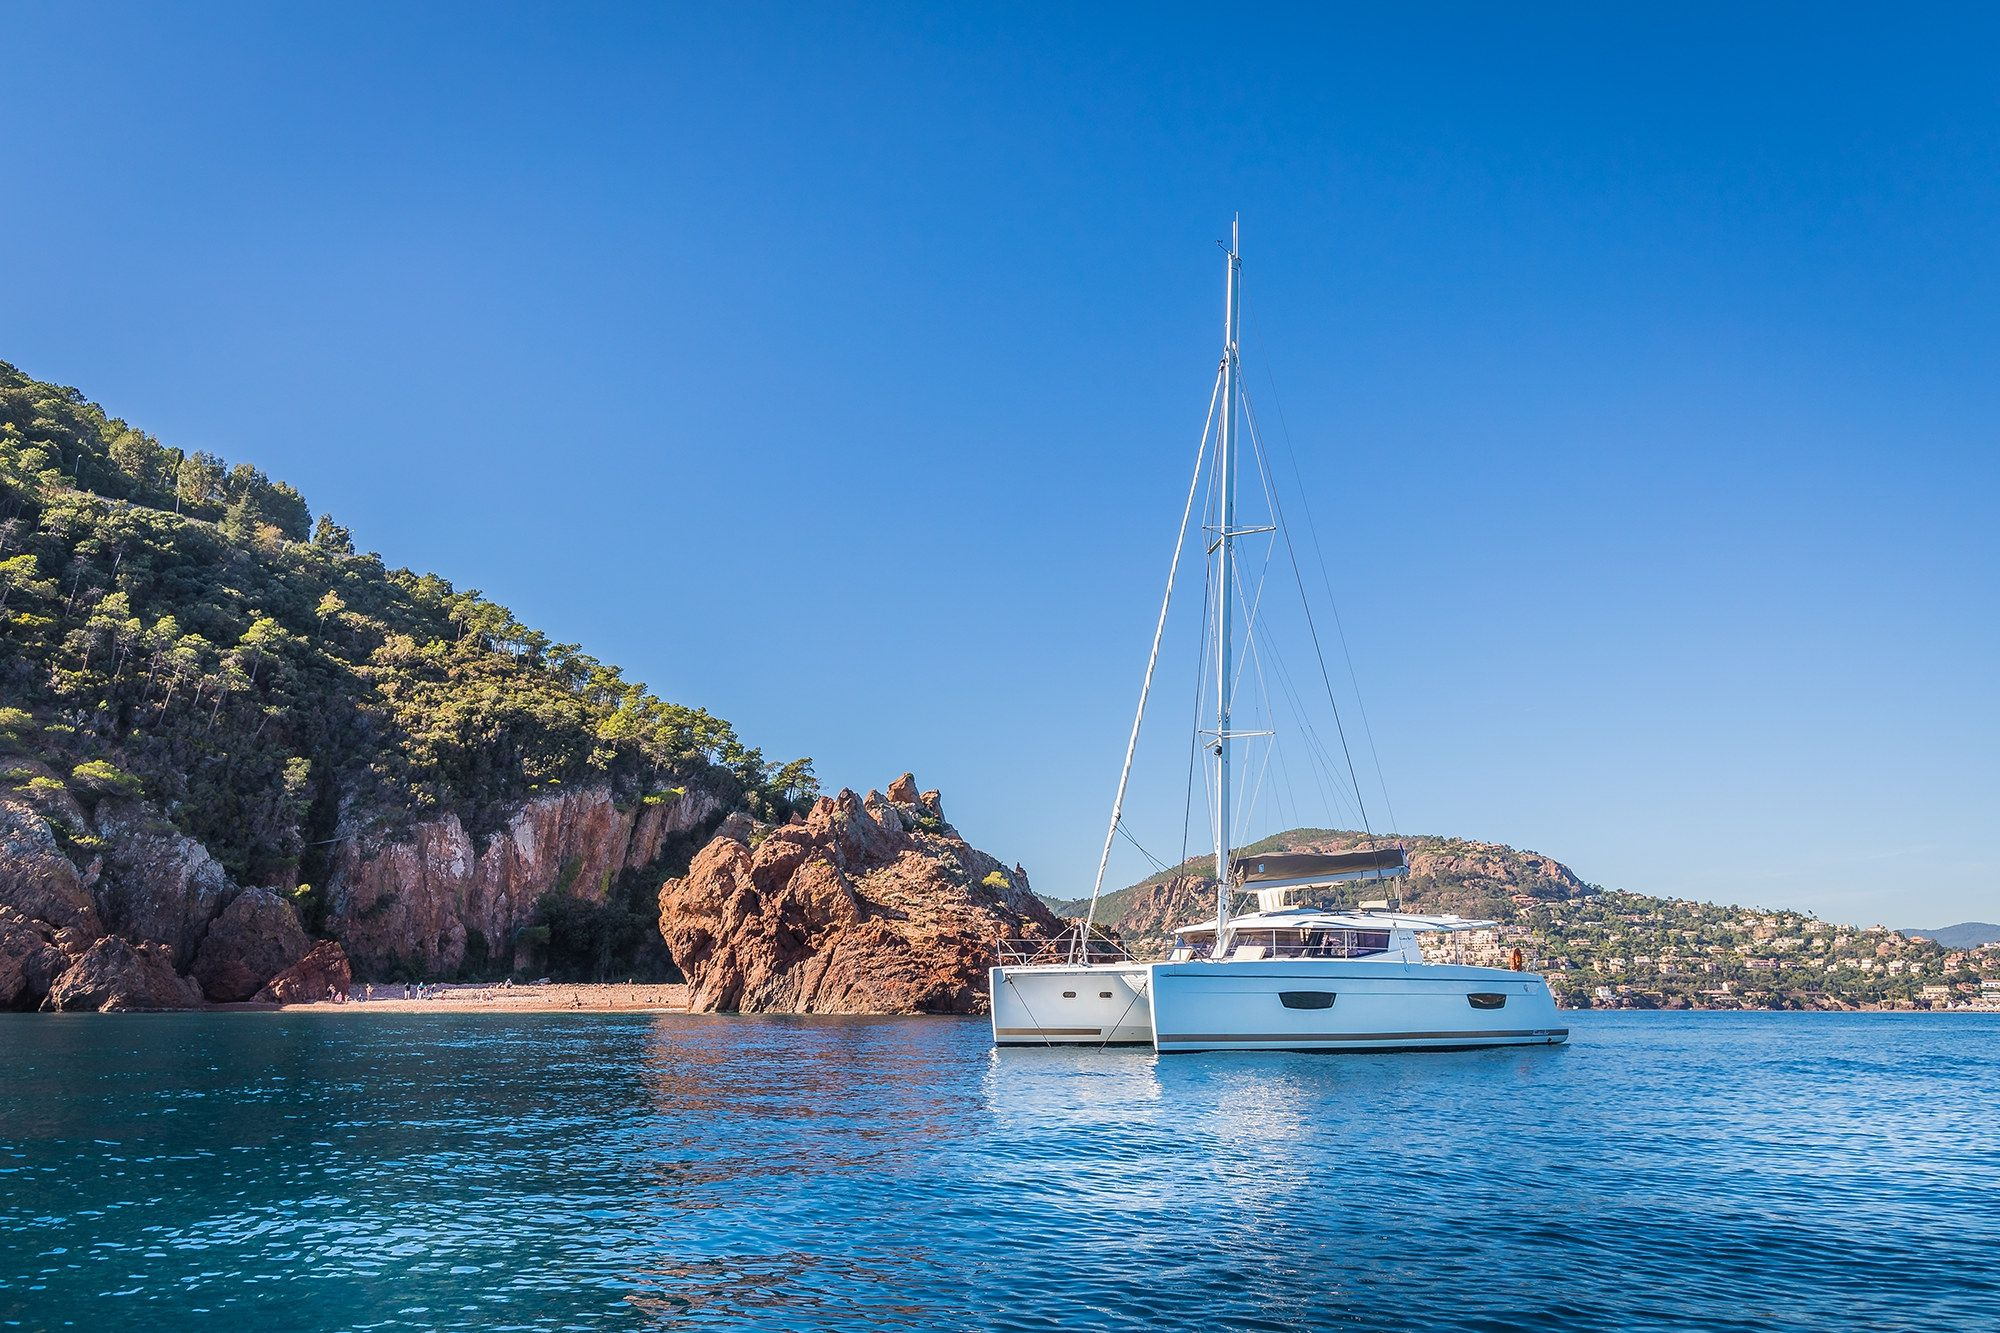 Fountaine Pajot Helia 44 - Day charter / Week charter - 4 cabins (4 double) - 2017 - Cannes